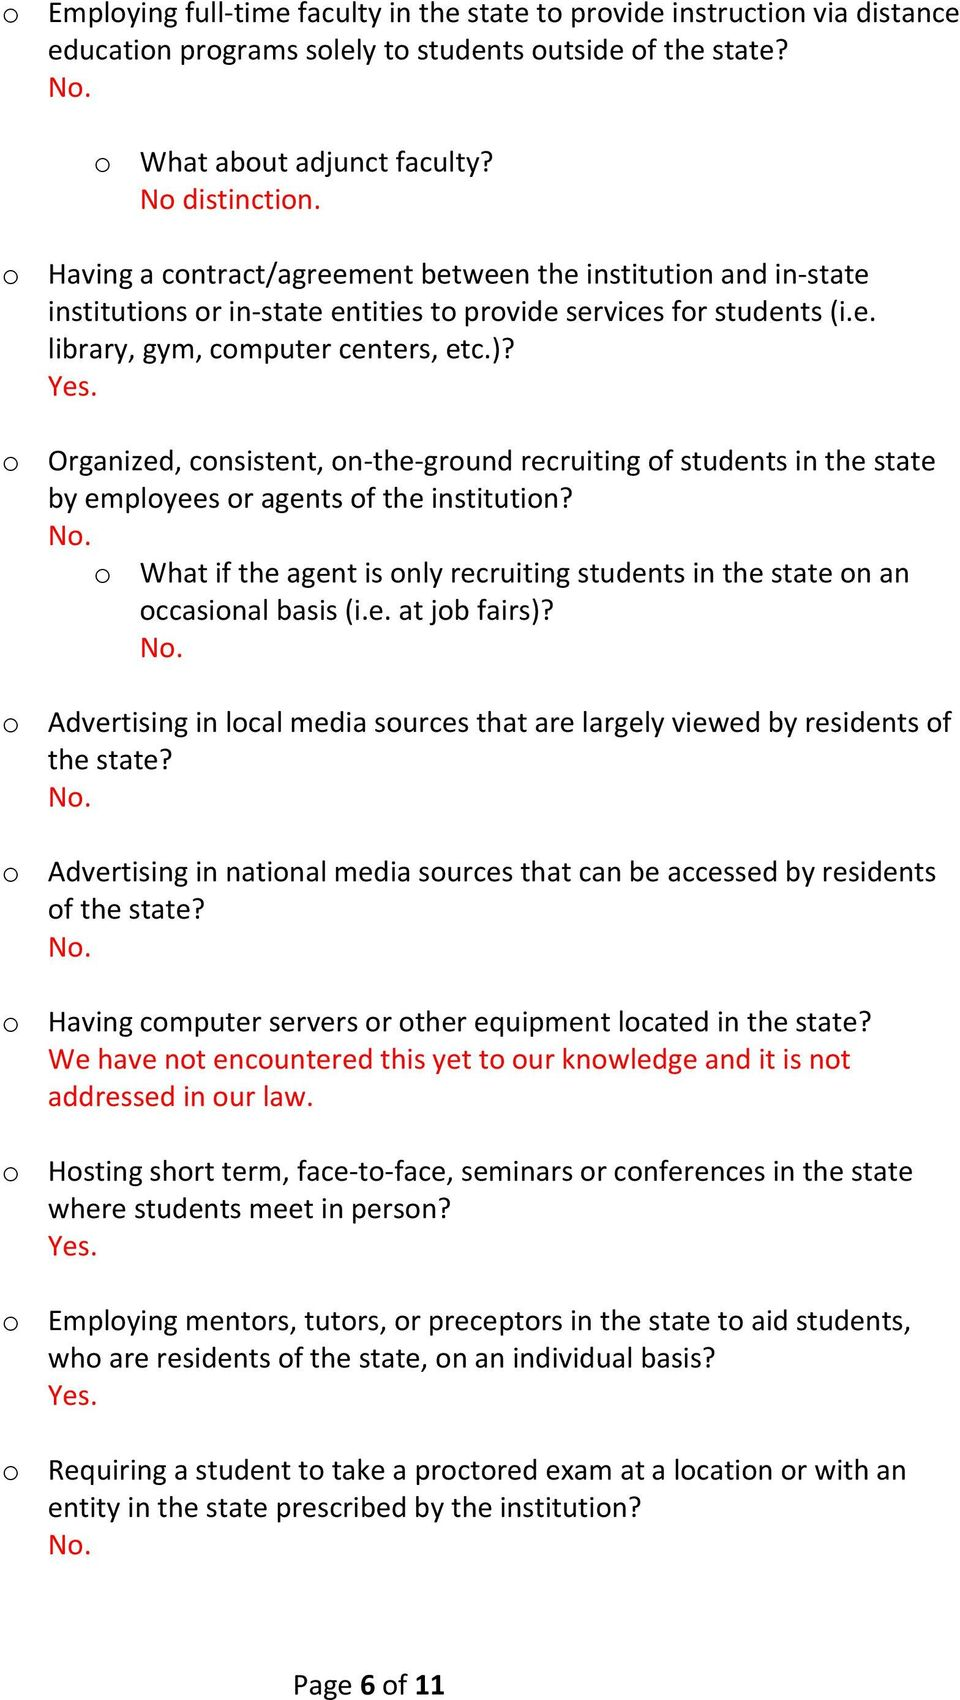 . o Organized, consistent, on-the-ground recruiting of students in the state by employees or agents of the institution?